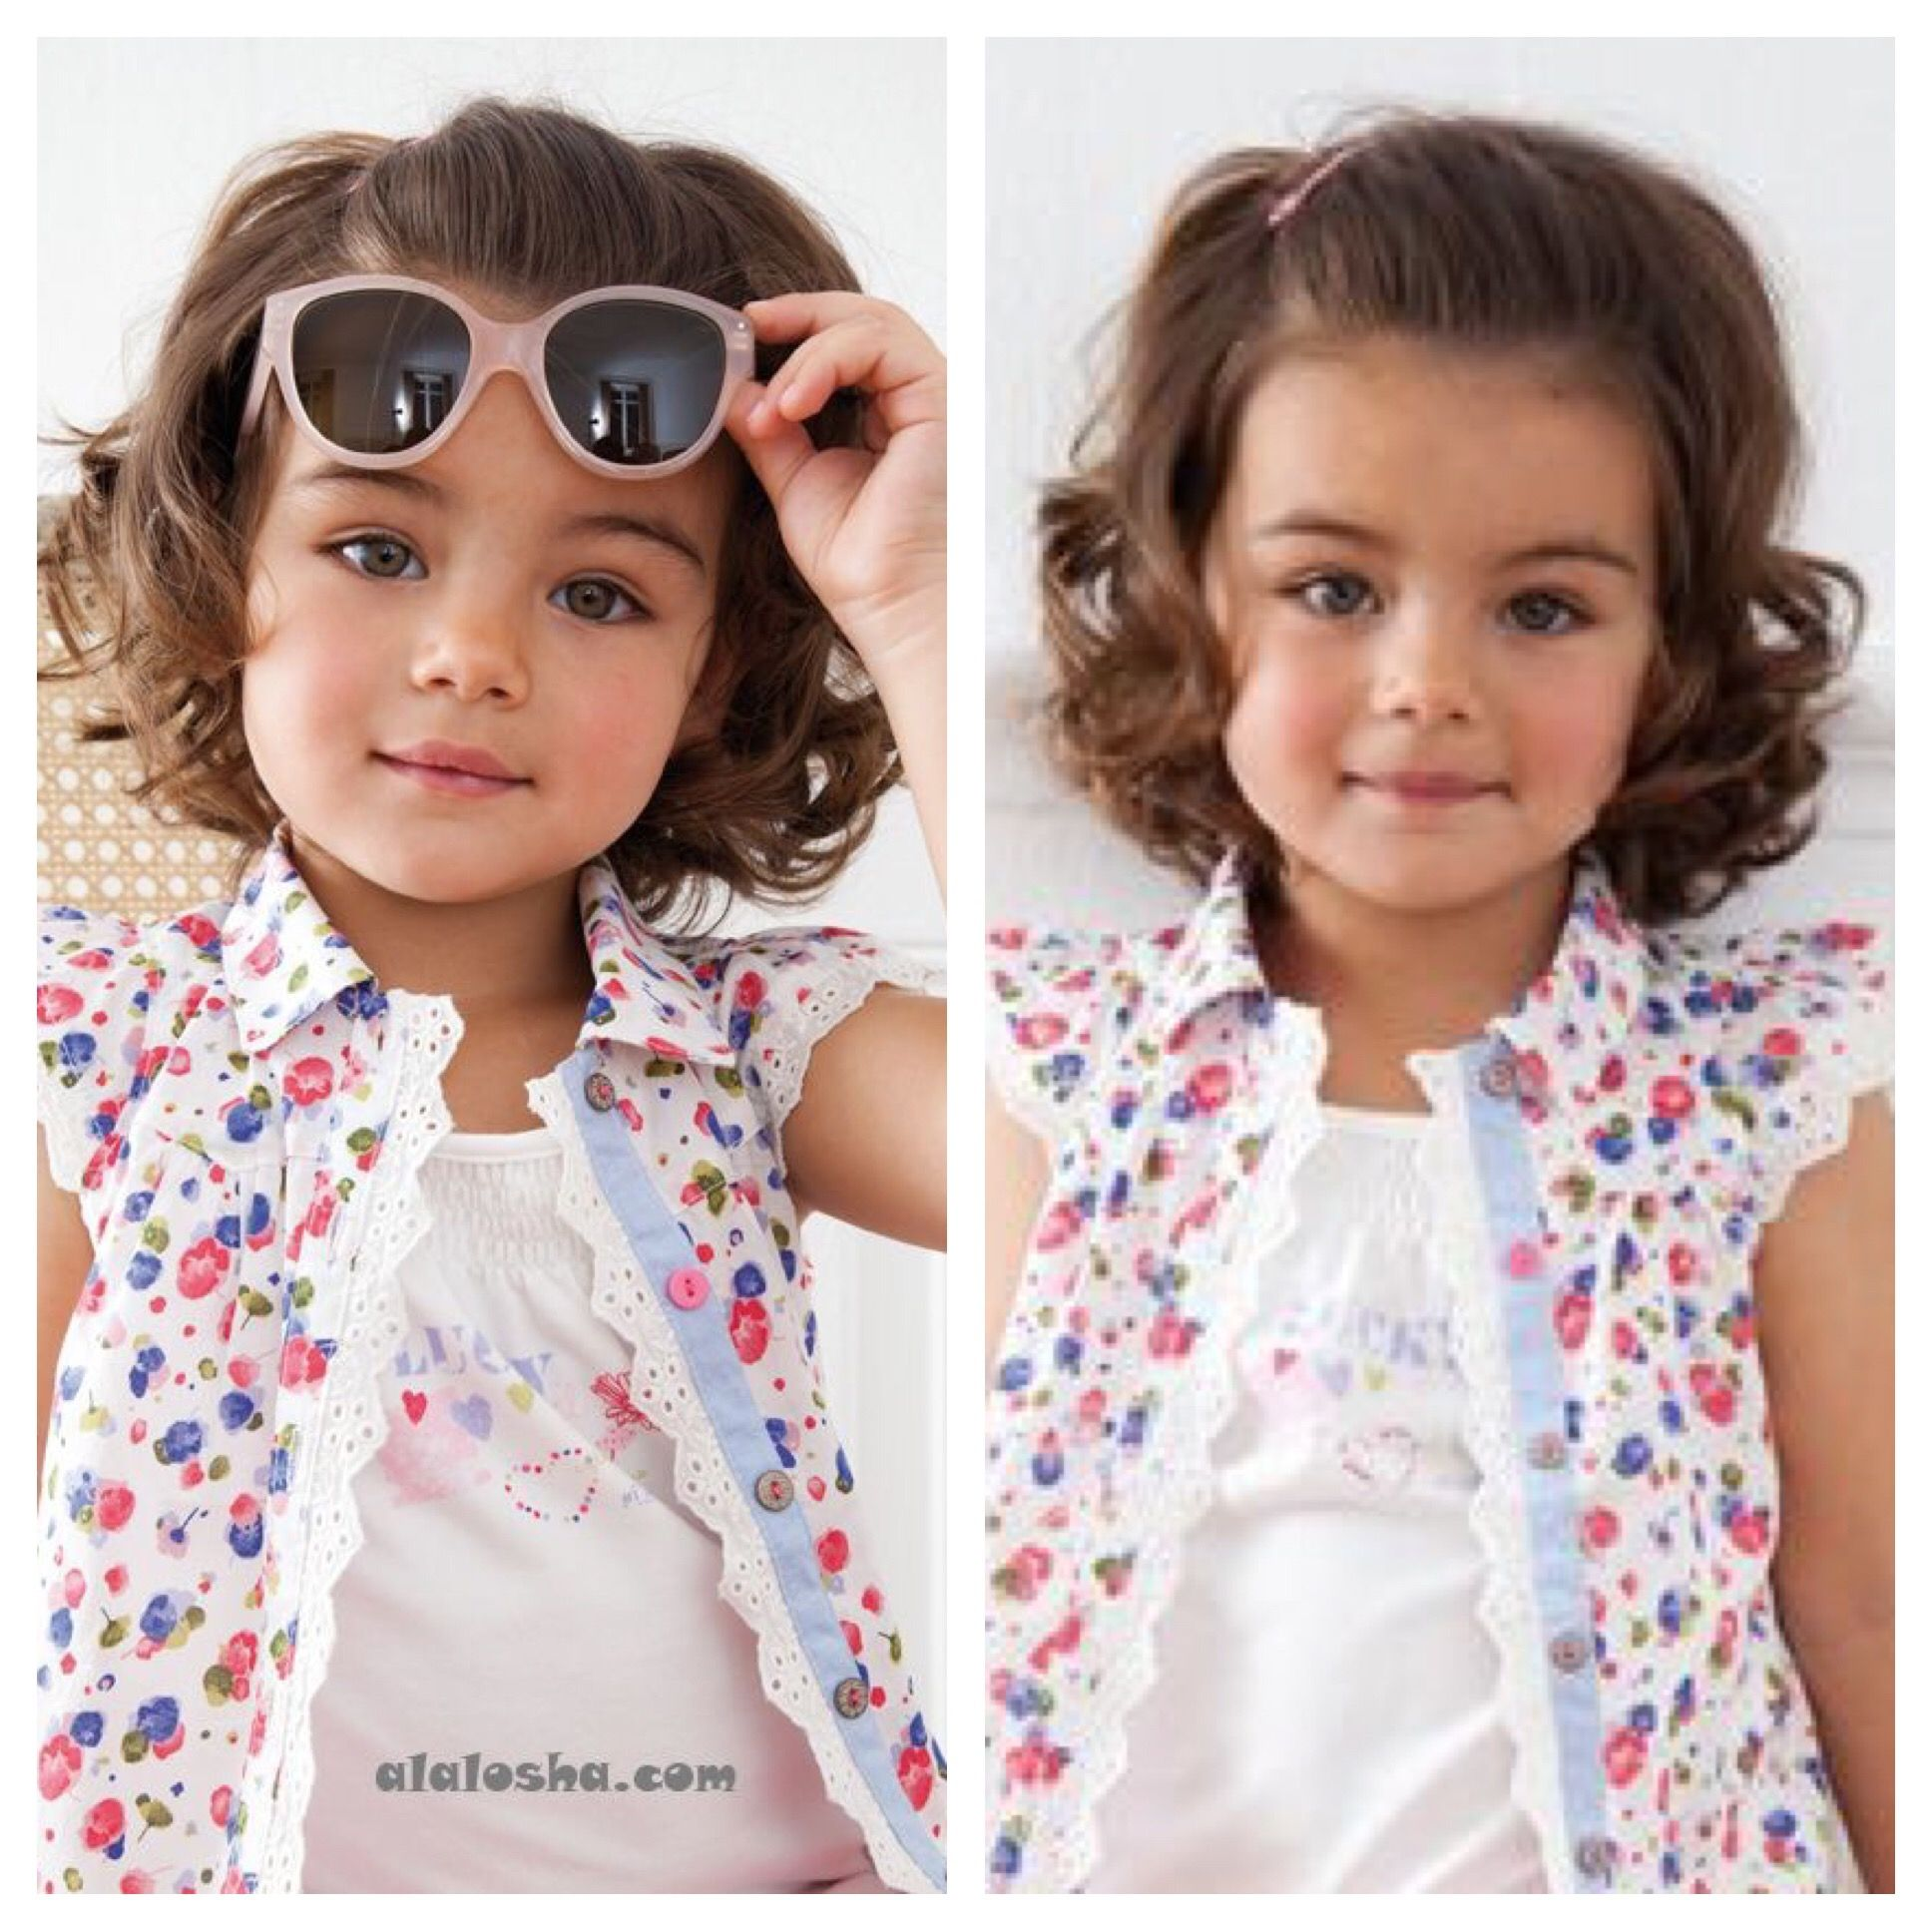 Hair Styles For Toddlers With Curly Hair